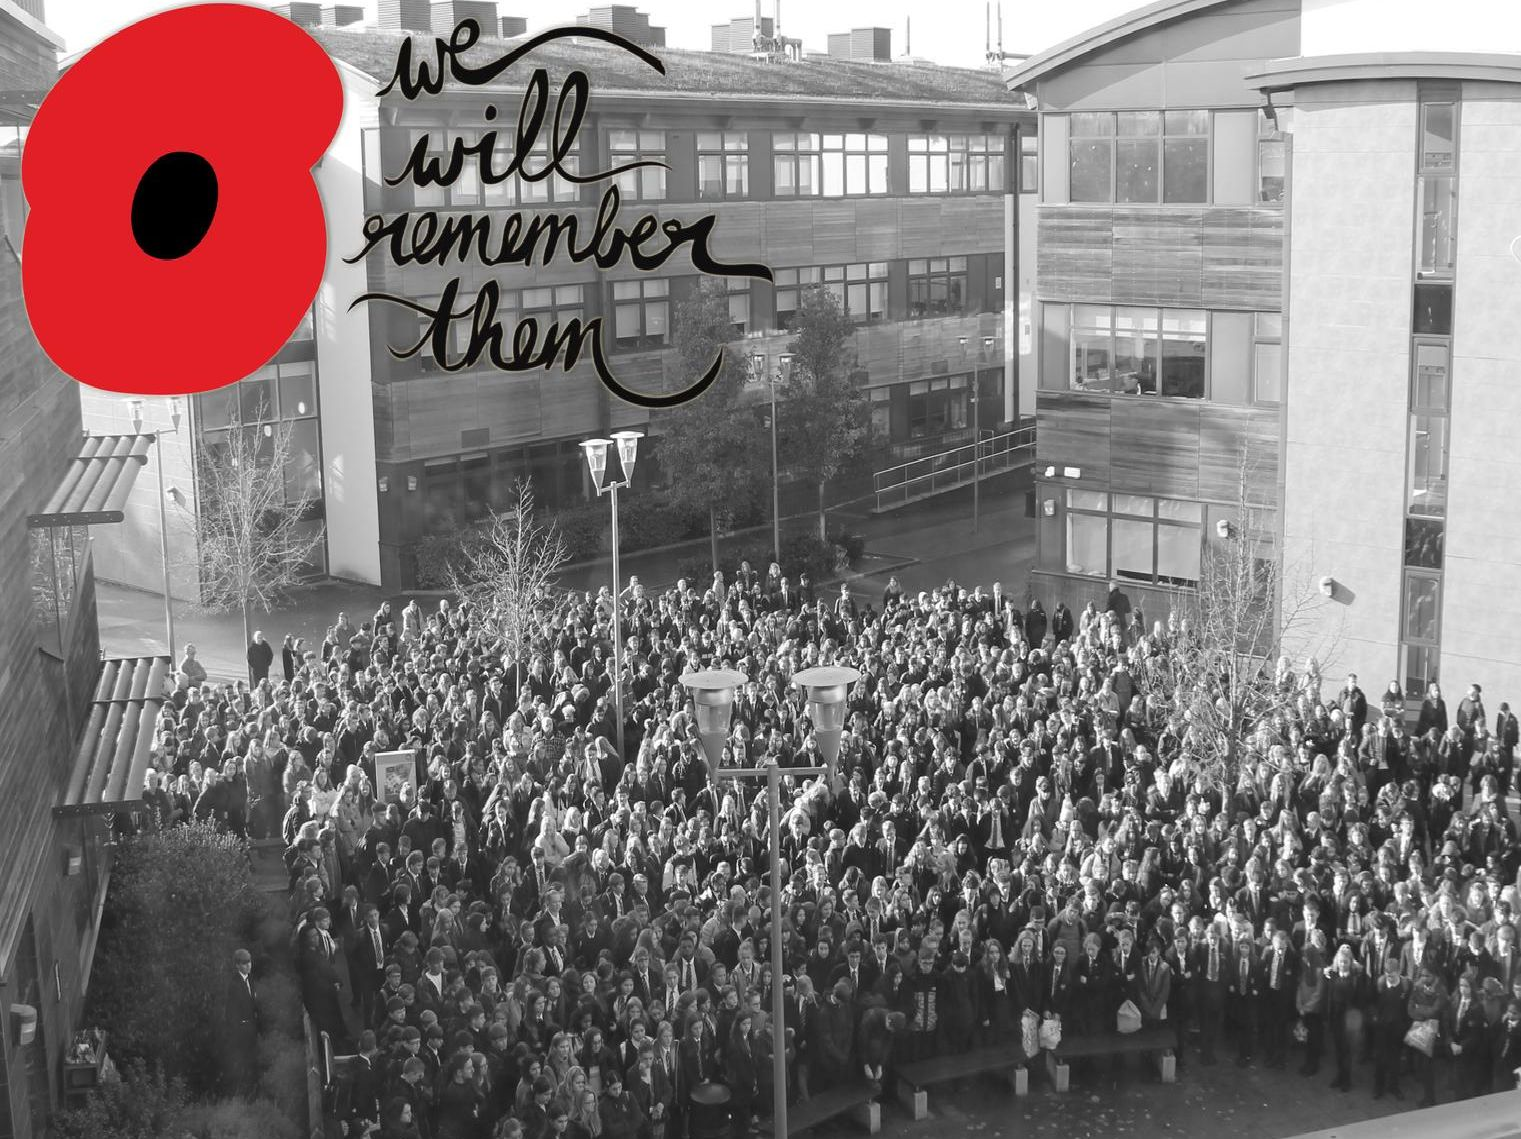 Nearly 1,400 students and staff from North Leamington School gathered today (Monday November 11) on Armistice Day to pay their respects which included a two-minute silence.